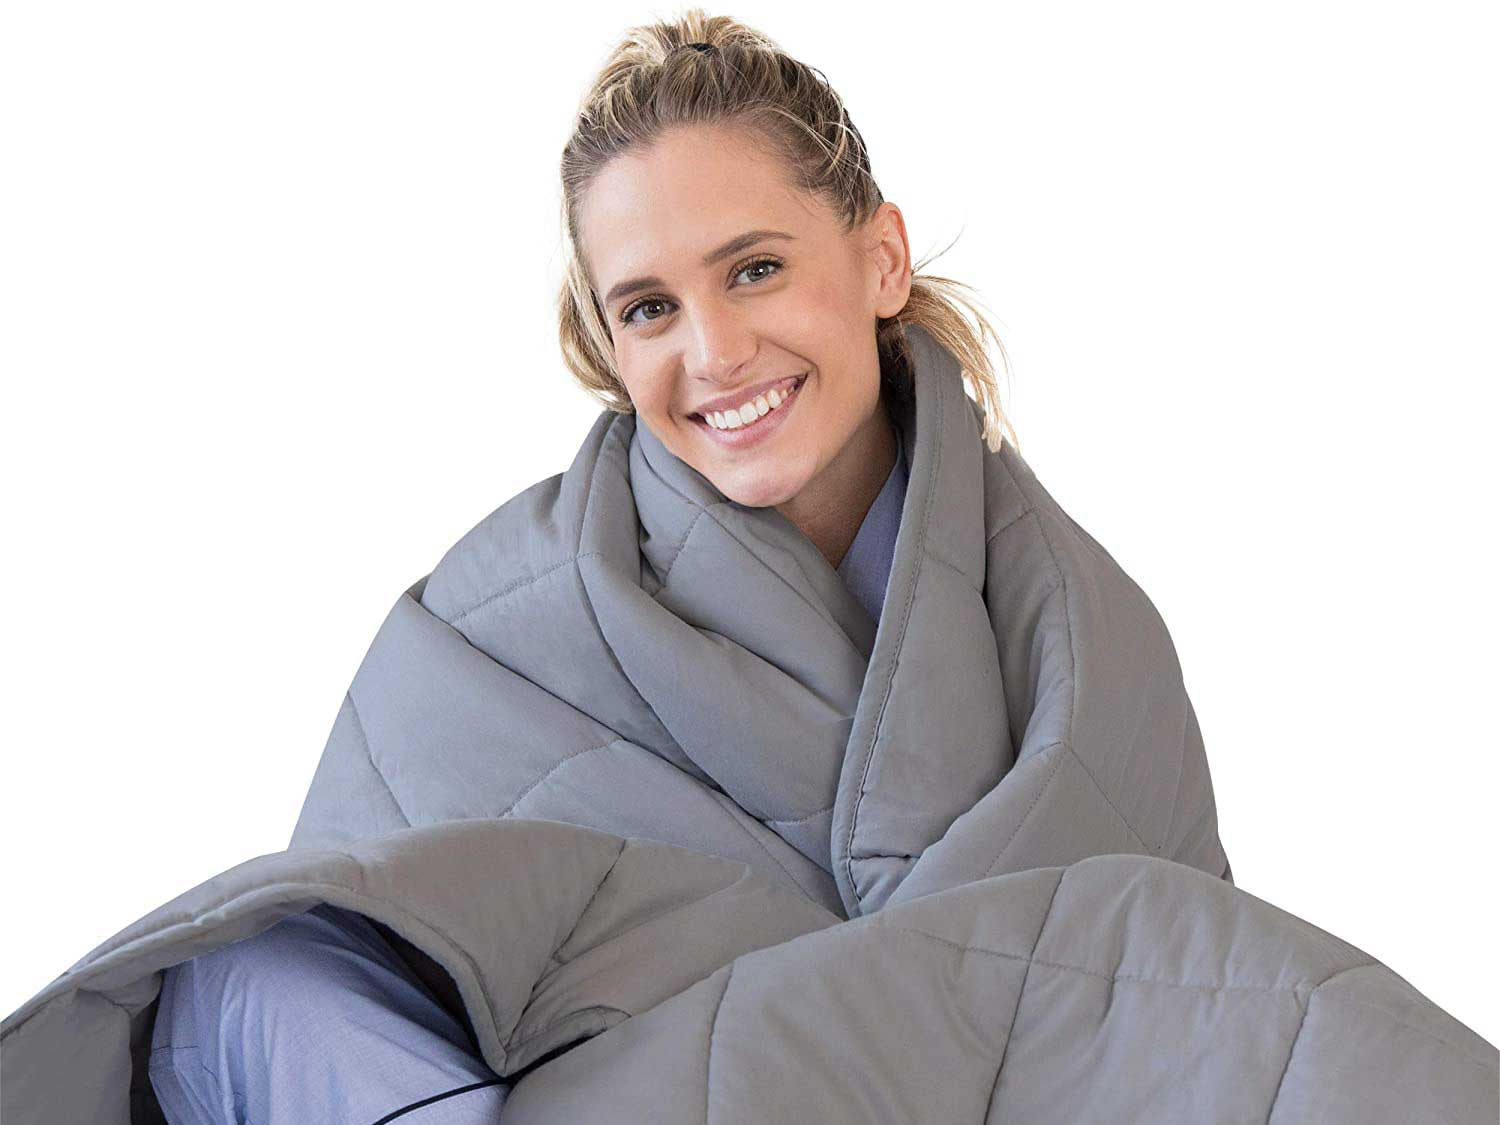 Luna Adult Weighted Blanket | Individual Use - 15 lbs - 60x80 - Queen Size Bed | 100% Oeko-Tex Certified Cooling Cotton & Glass Beads | USA Designed | Heavy Cool Weight | Dark Grey